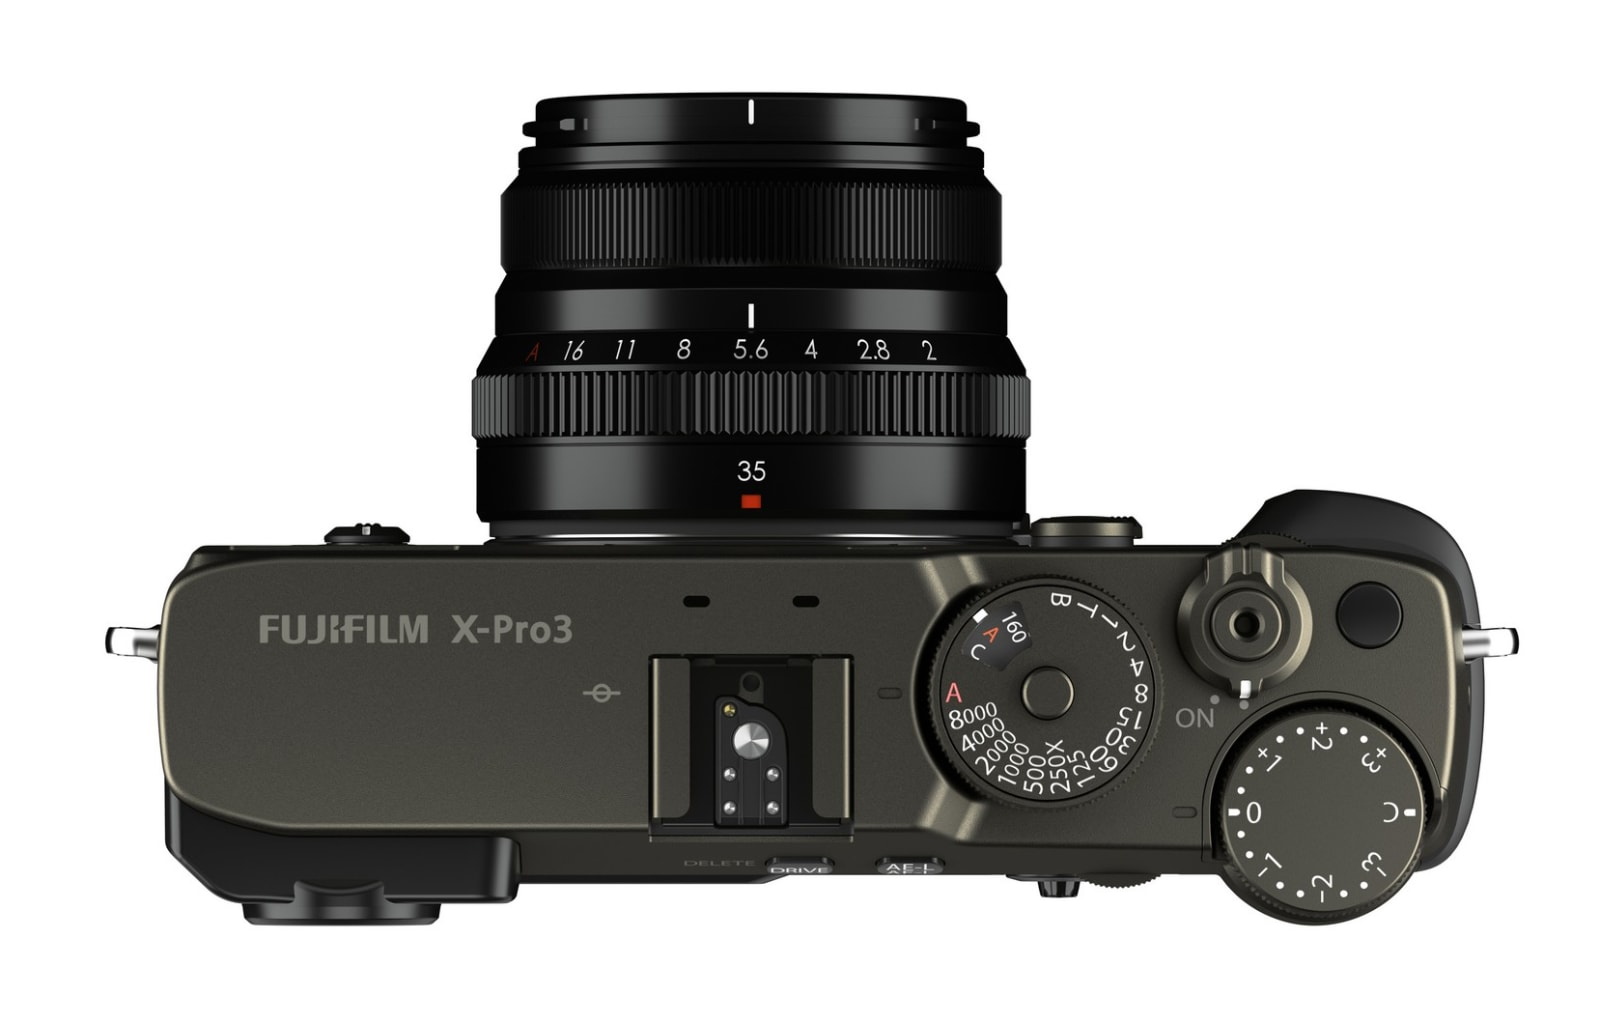 Fujifilm X-Pro3 APS-C mirrorless camera